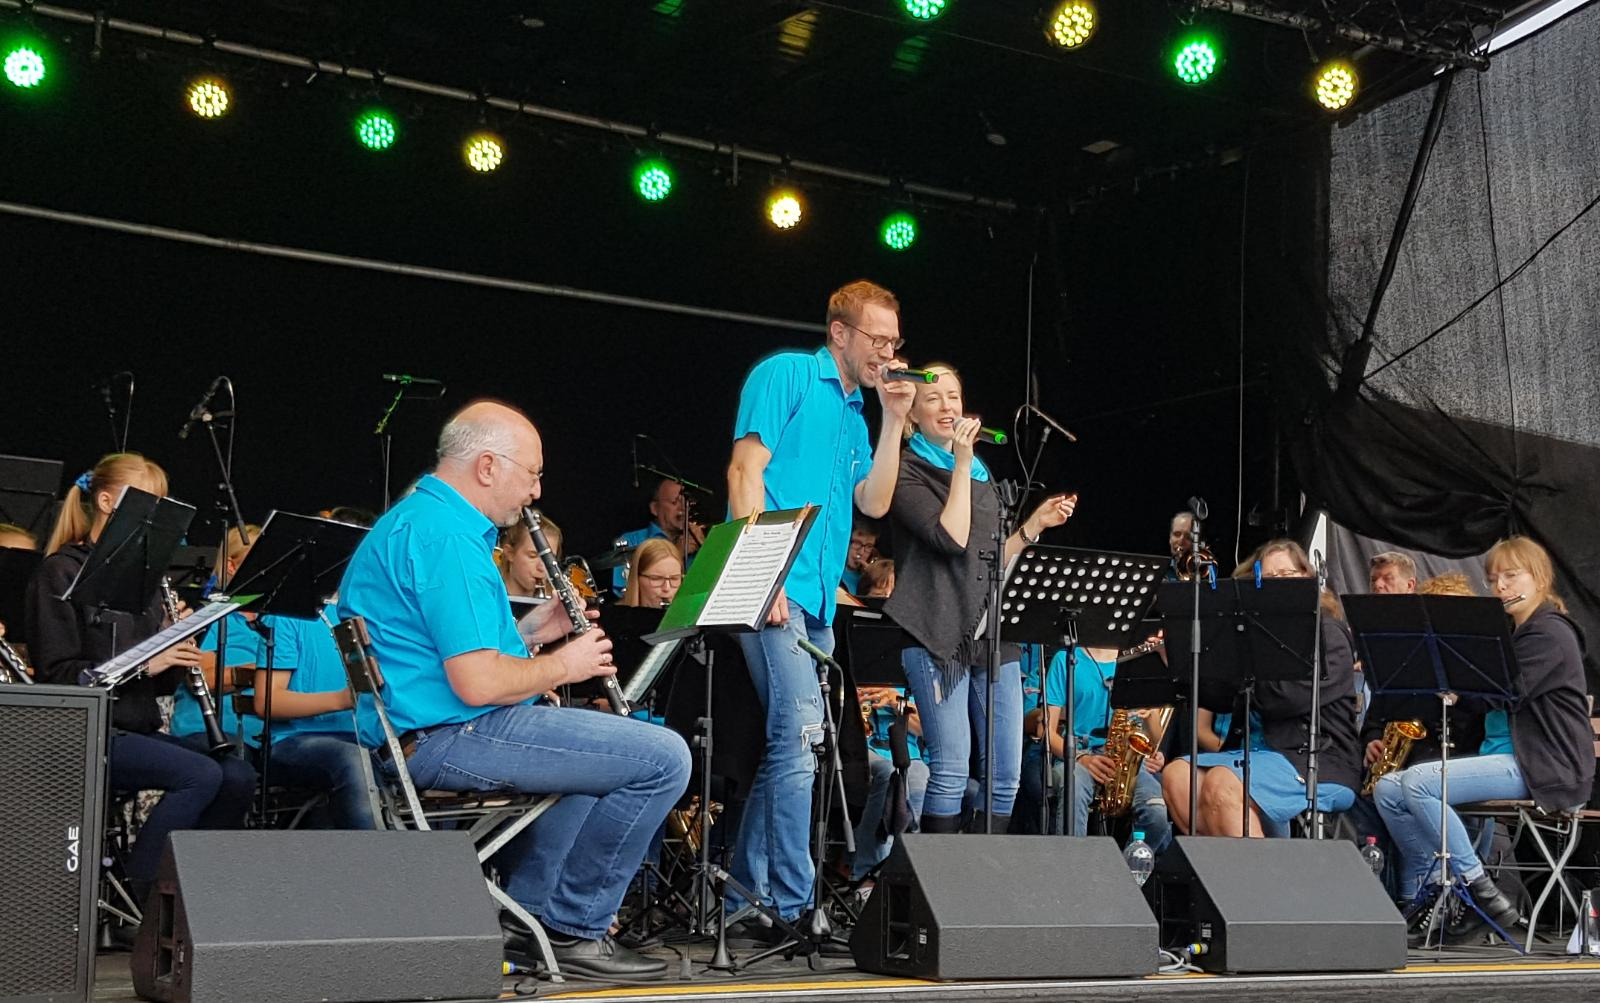 Sommerfest in Findorff 2019